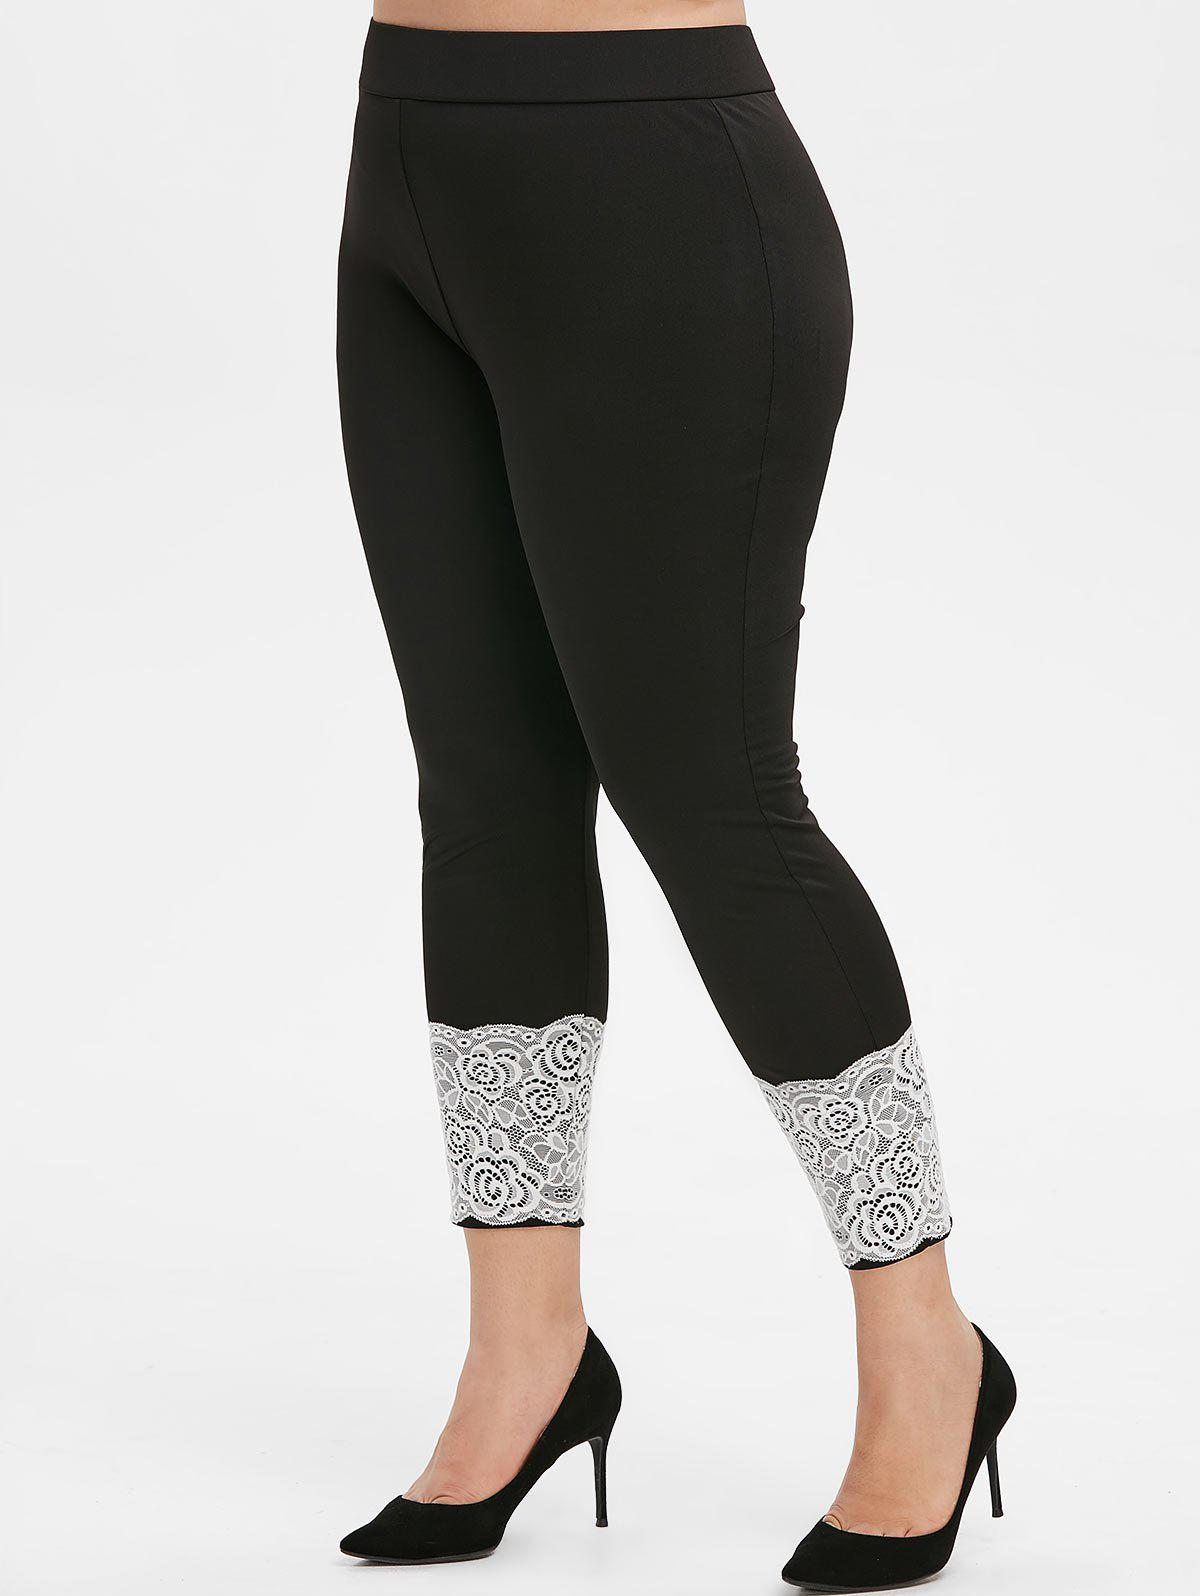 Plus Size Floral Lace Insert Fitted Leggings - BLACK 1X